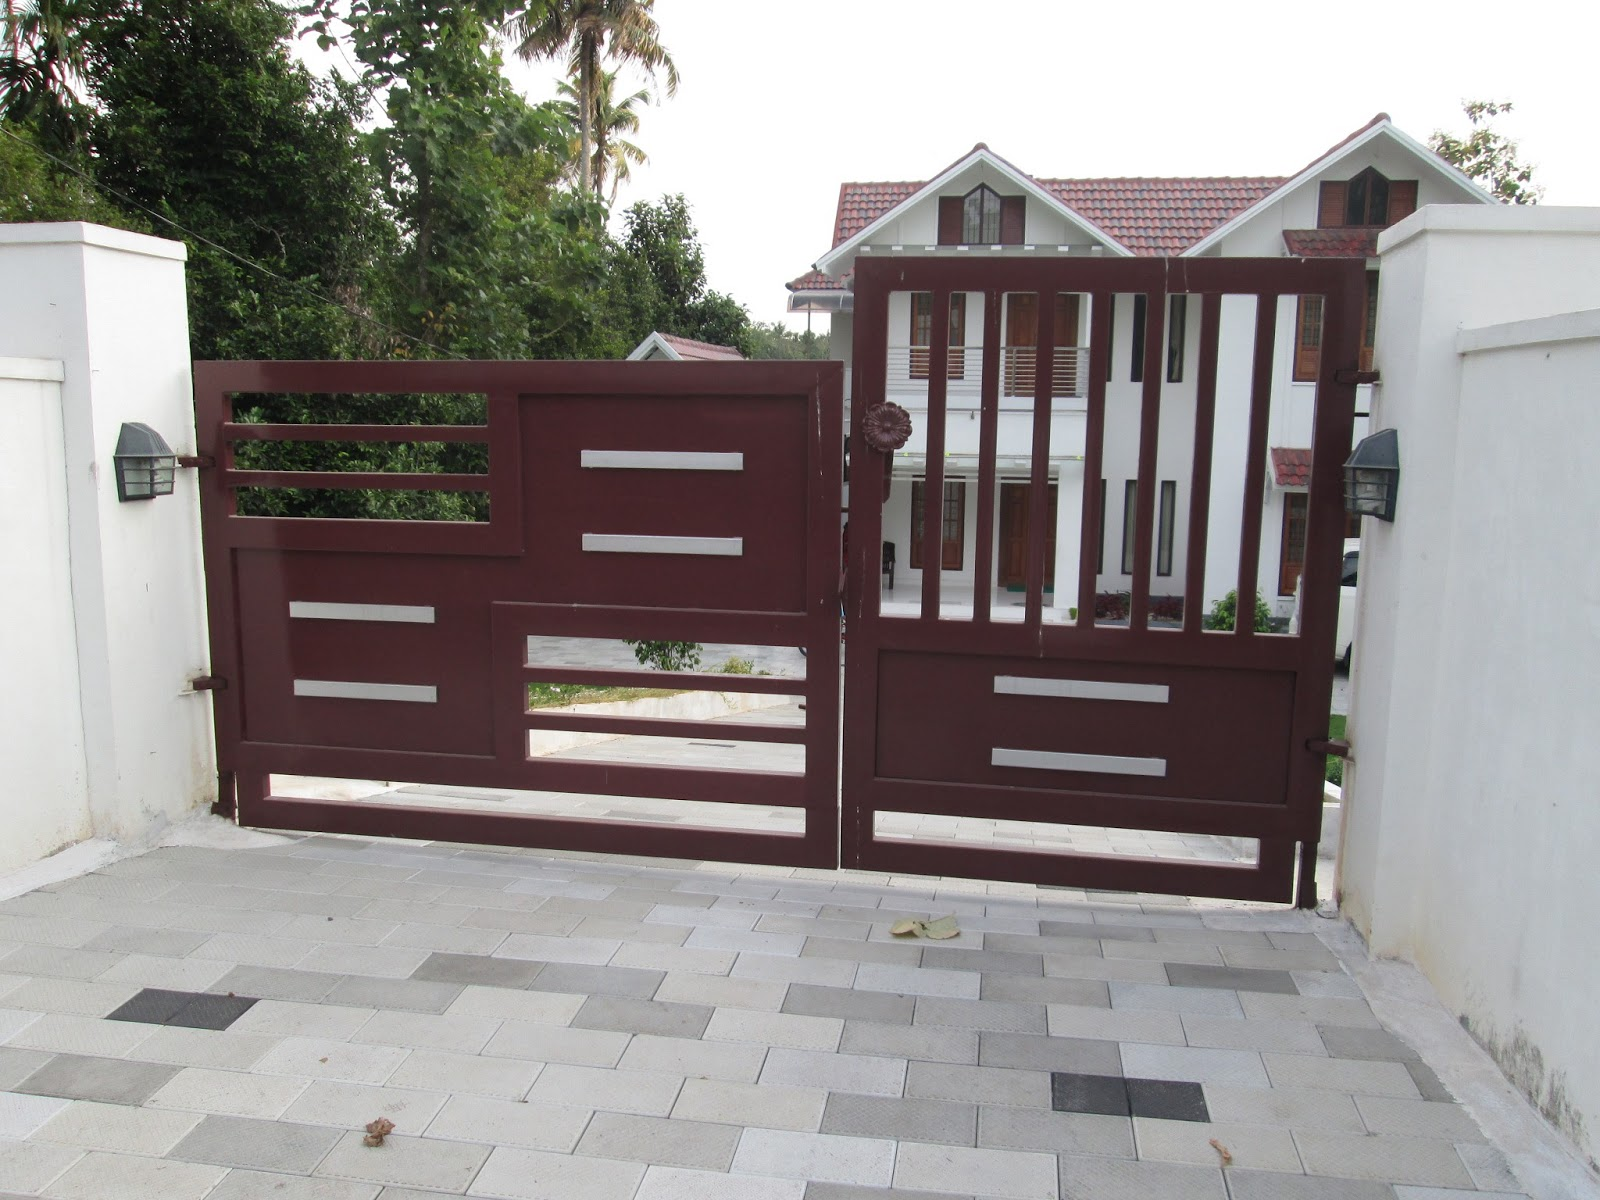 Kerala Gate Designs: A simple gate in Kerala